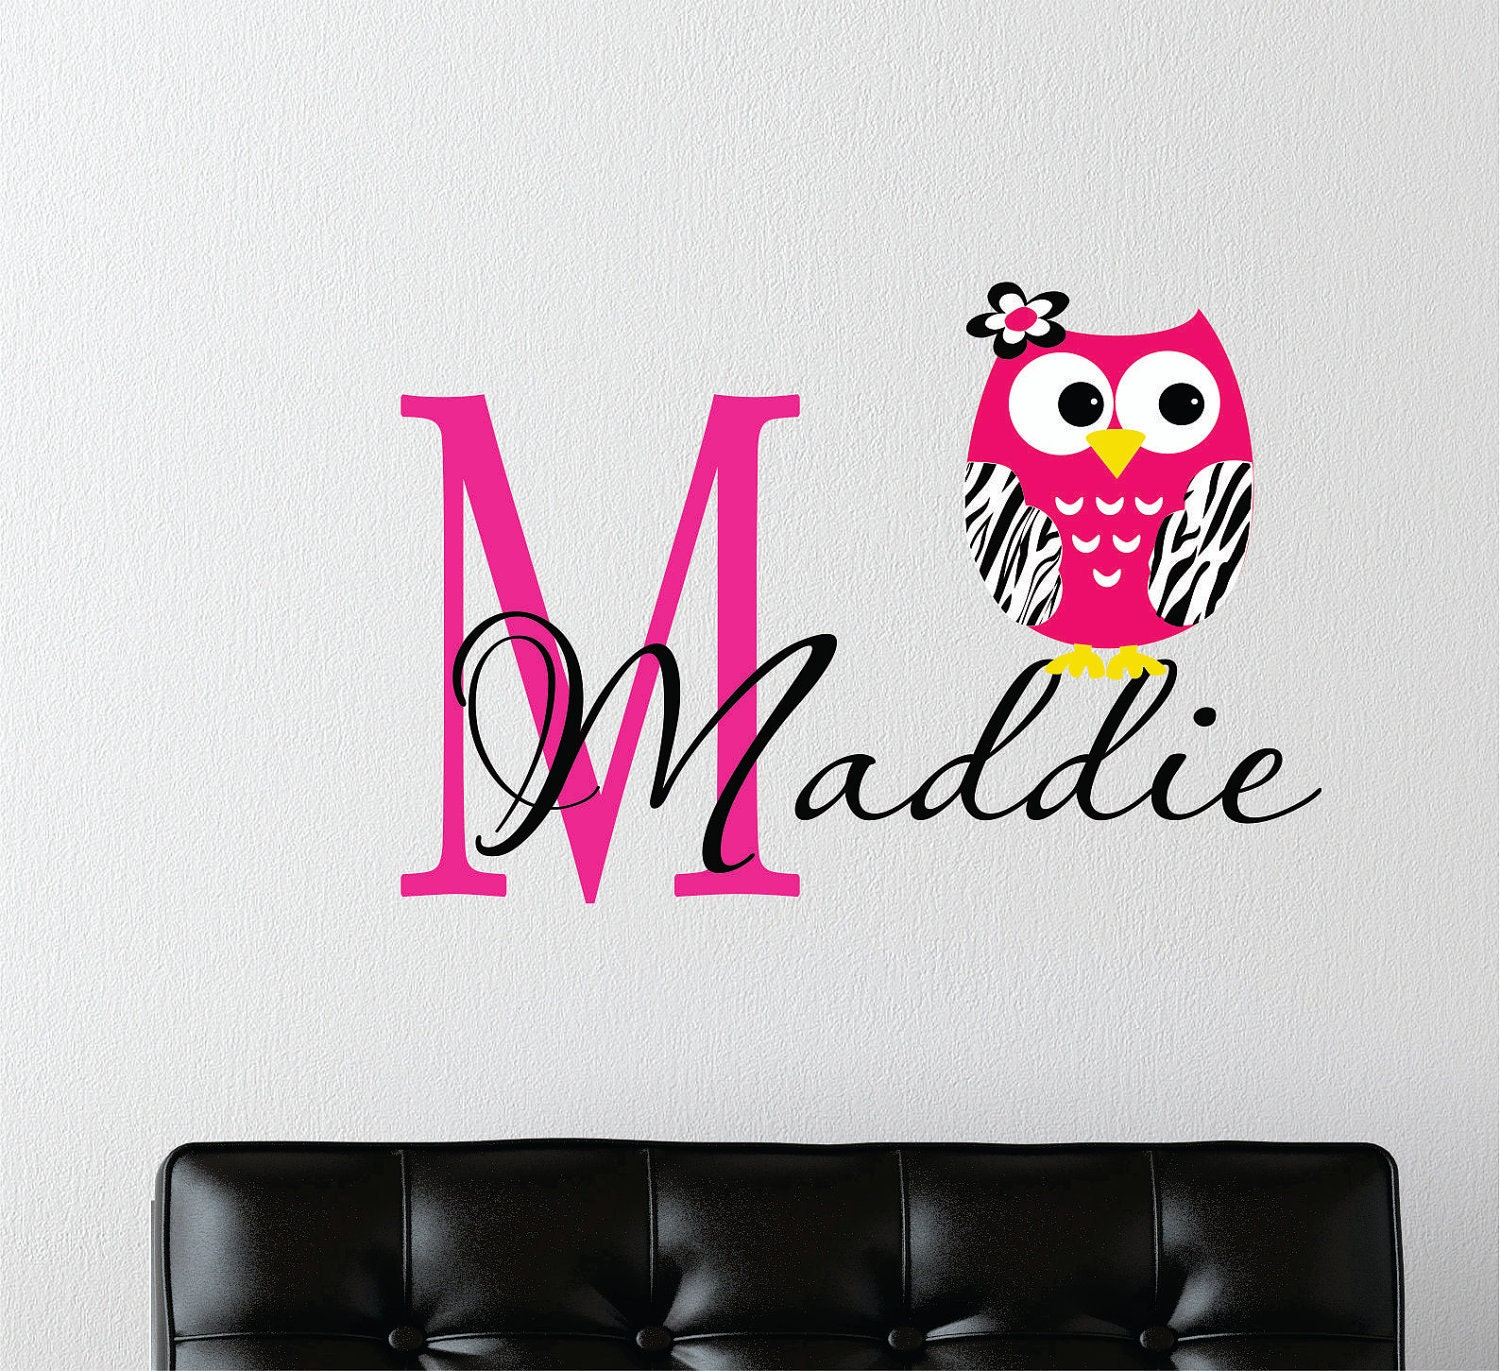 childrens decor zebra owl wall decal with name name wall decal childrens decor zebra owl wall decal with name name wall decal girls teen bedroom childrens wall decals zebra jungle decals